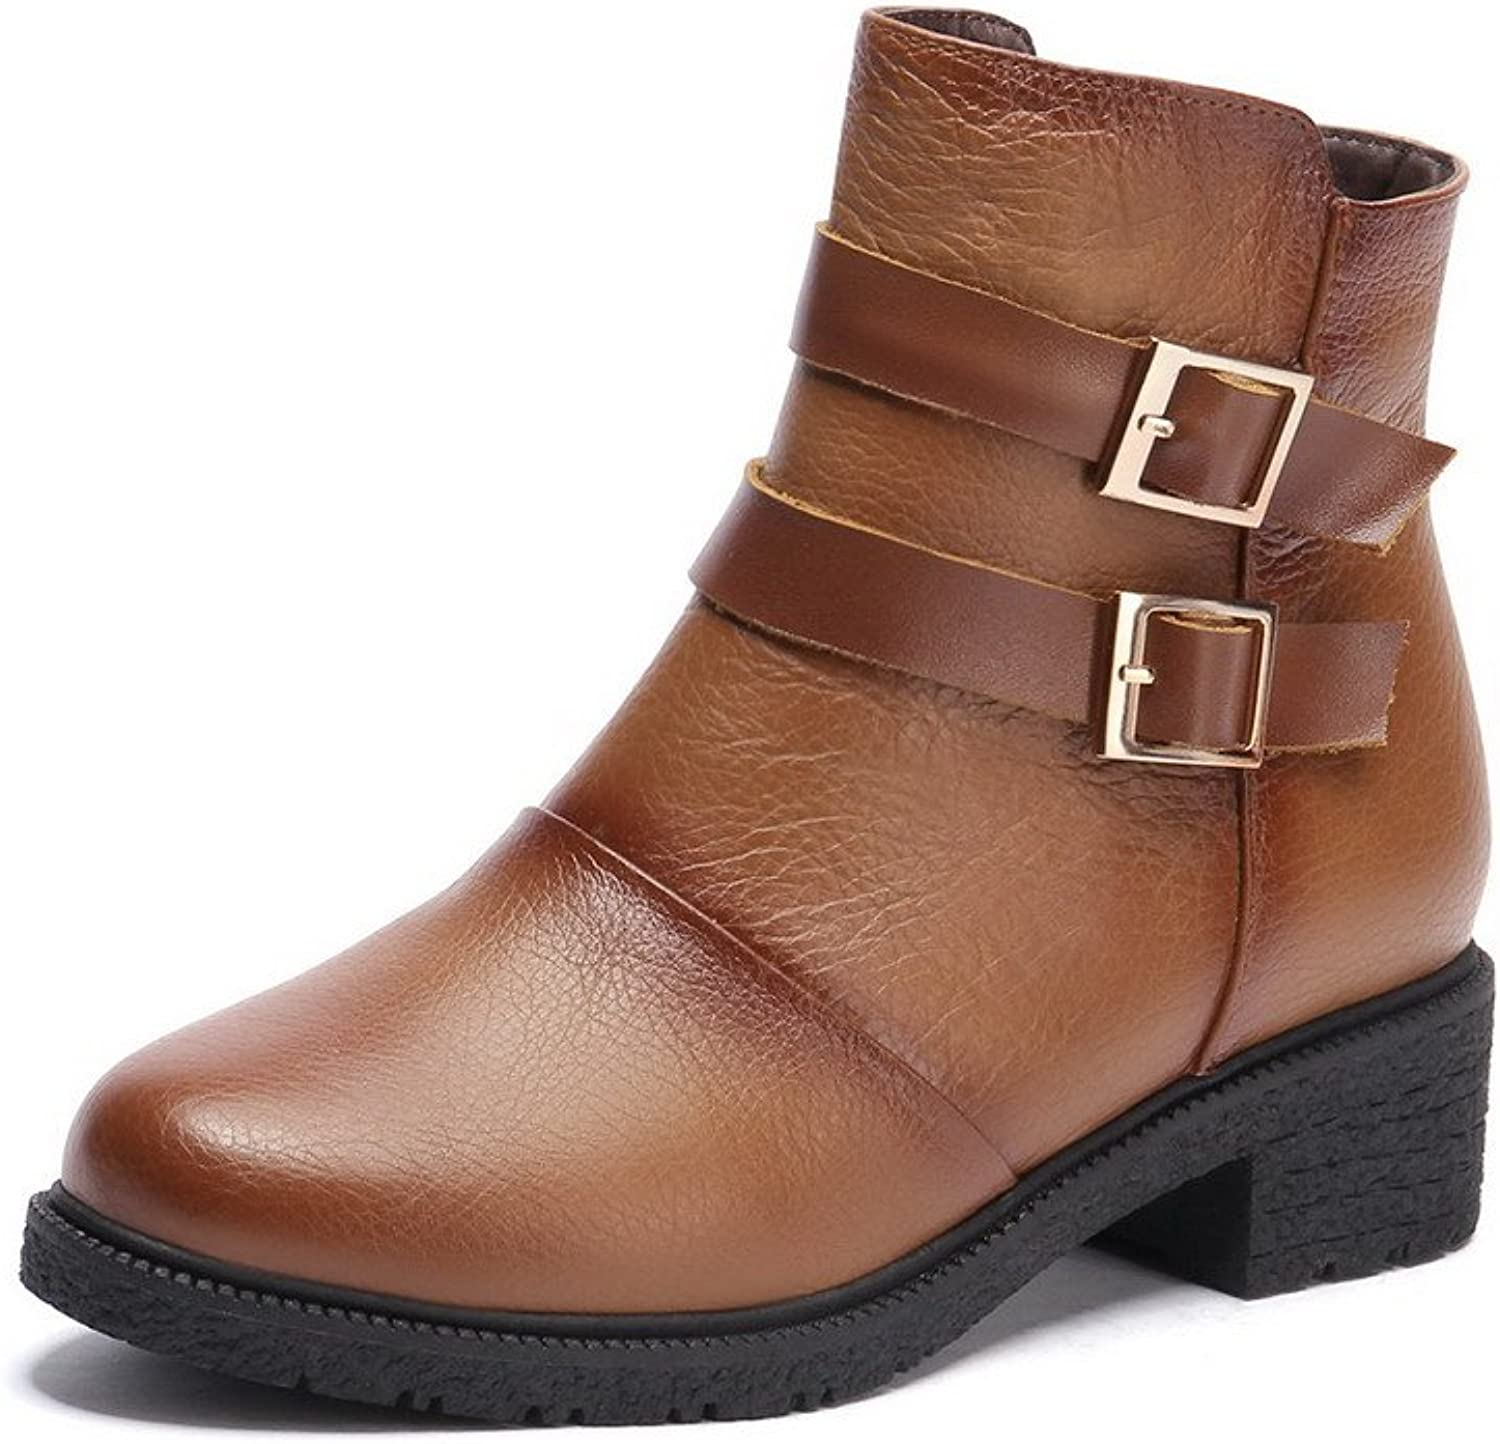 AmoonyFashion Women's Round-Toe Closed-Toe Low-Heels Boots with Rough Heels and Double Breasted